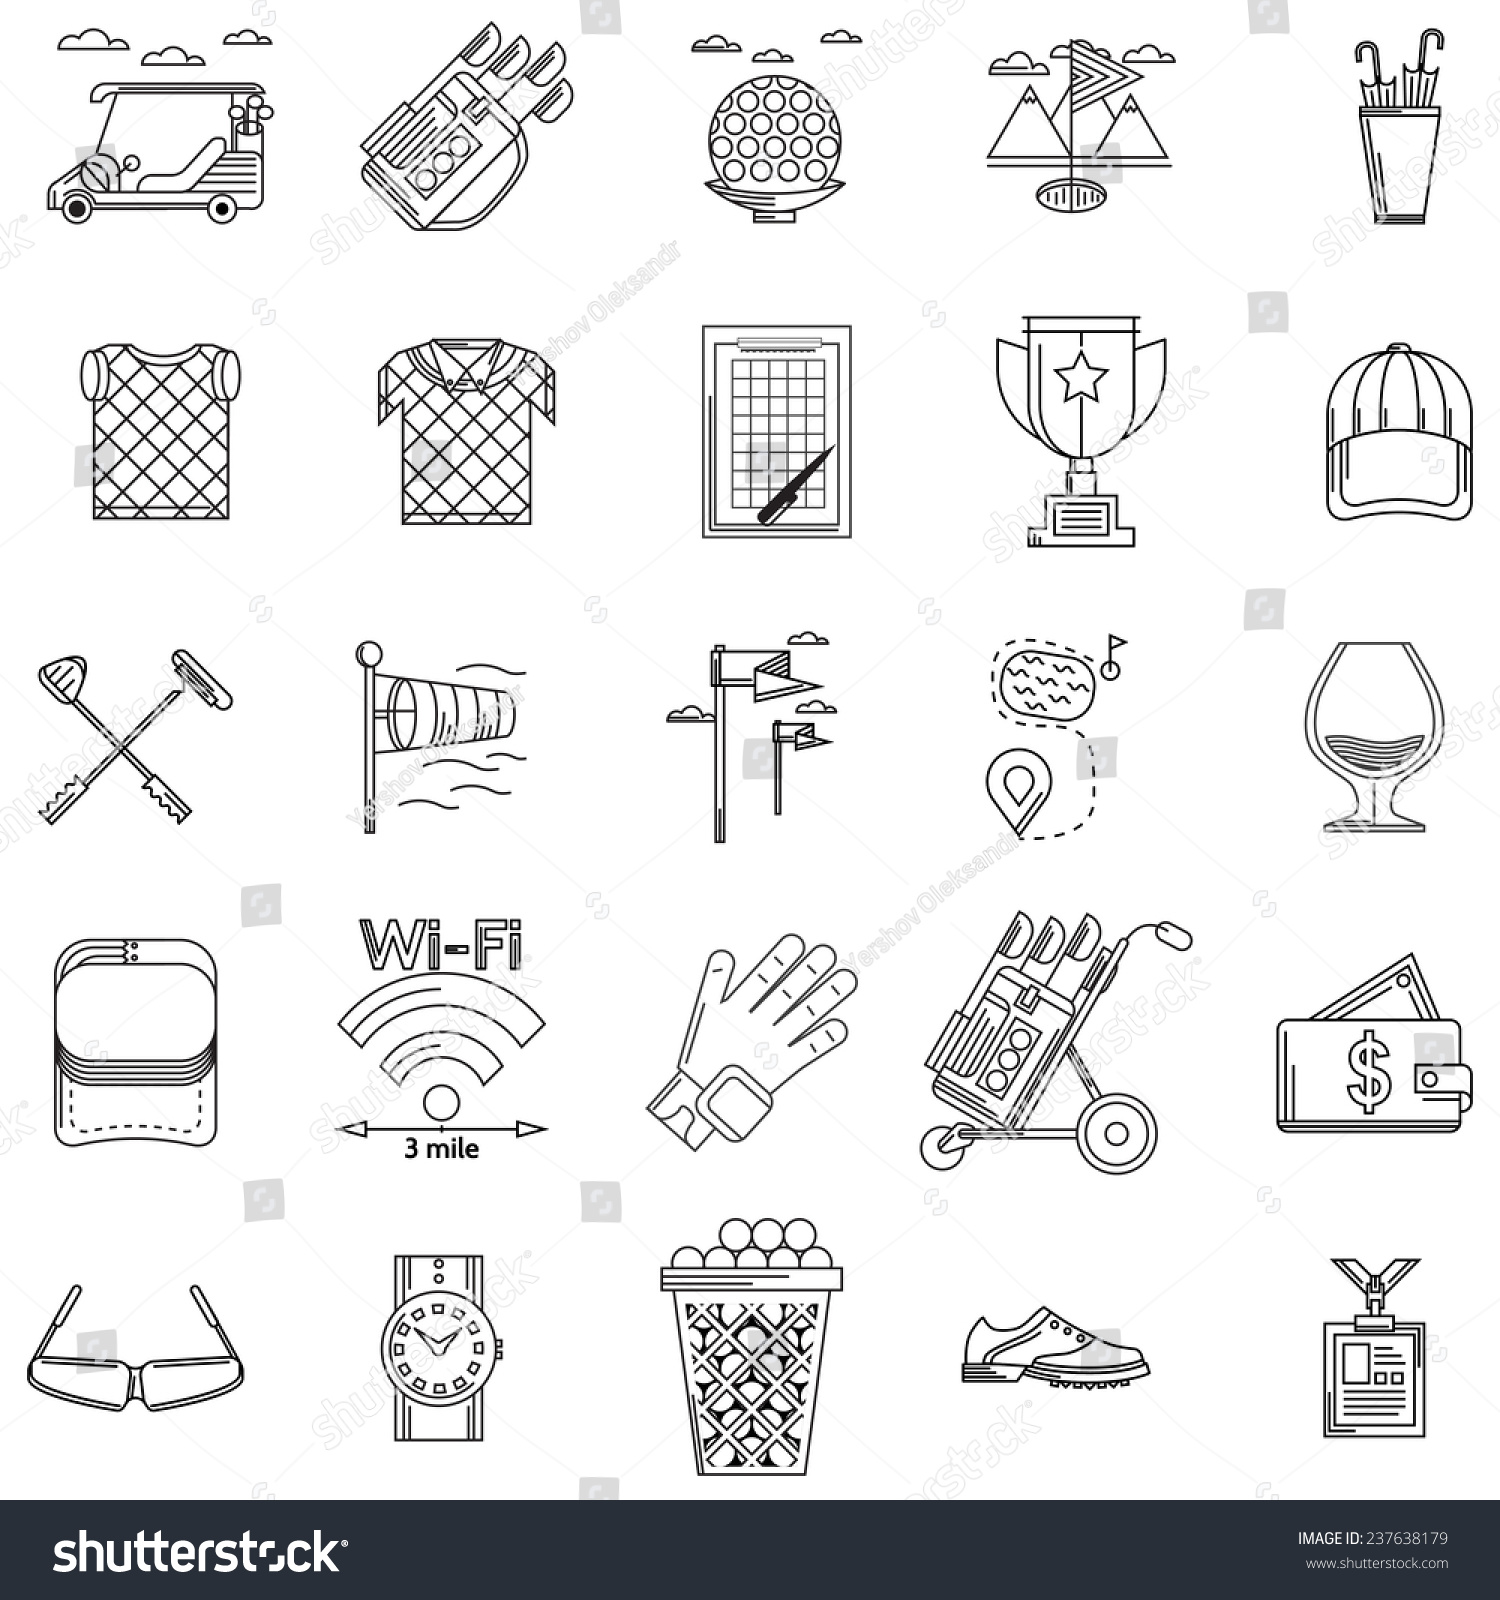 Black contour vector icons golf black stock vector 237638179 black contour vector icons for golf black outline icons vector collection of elements and symbols biocorpaavc Gallery